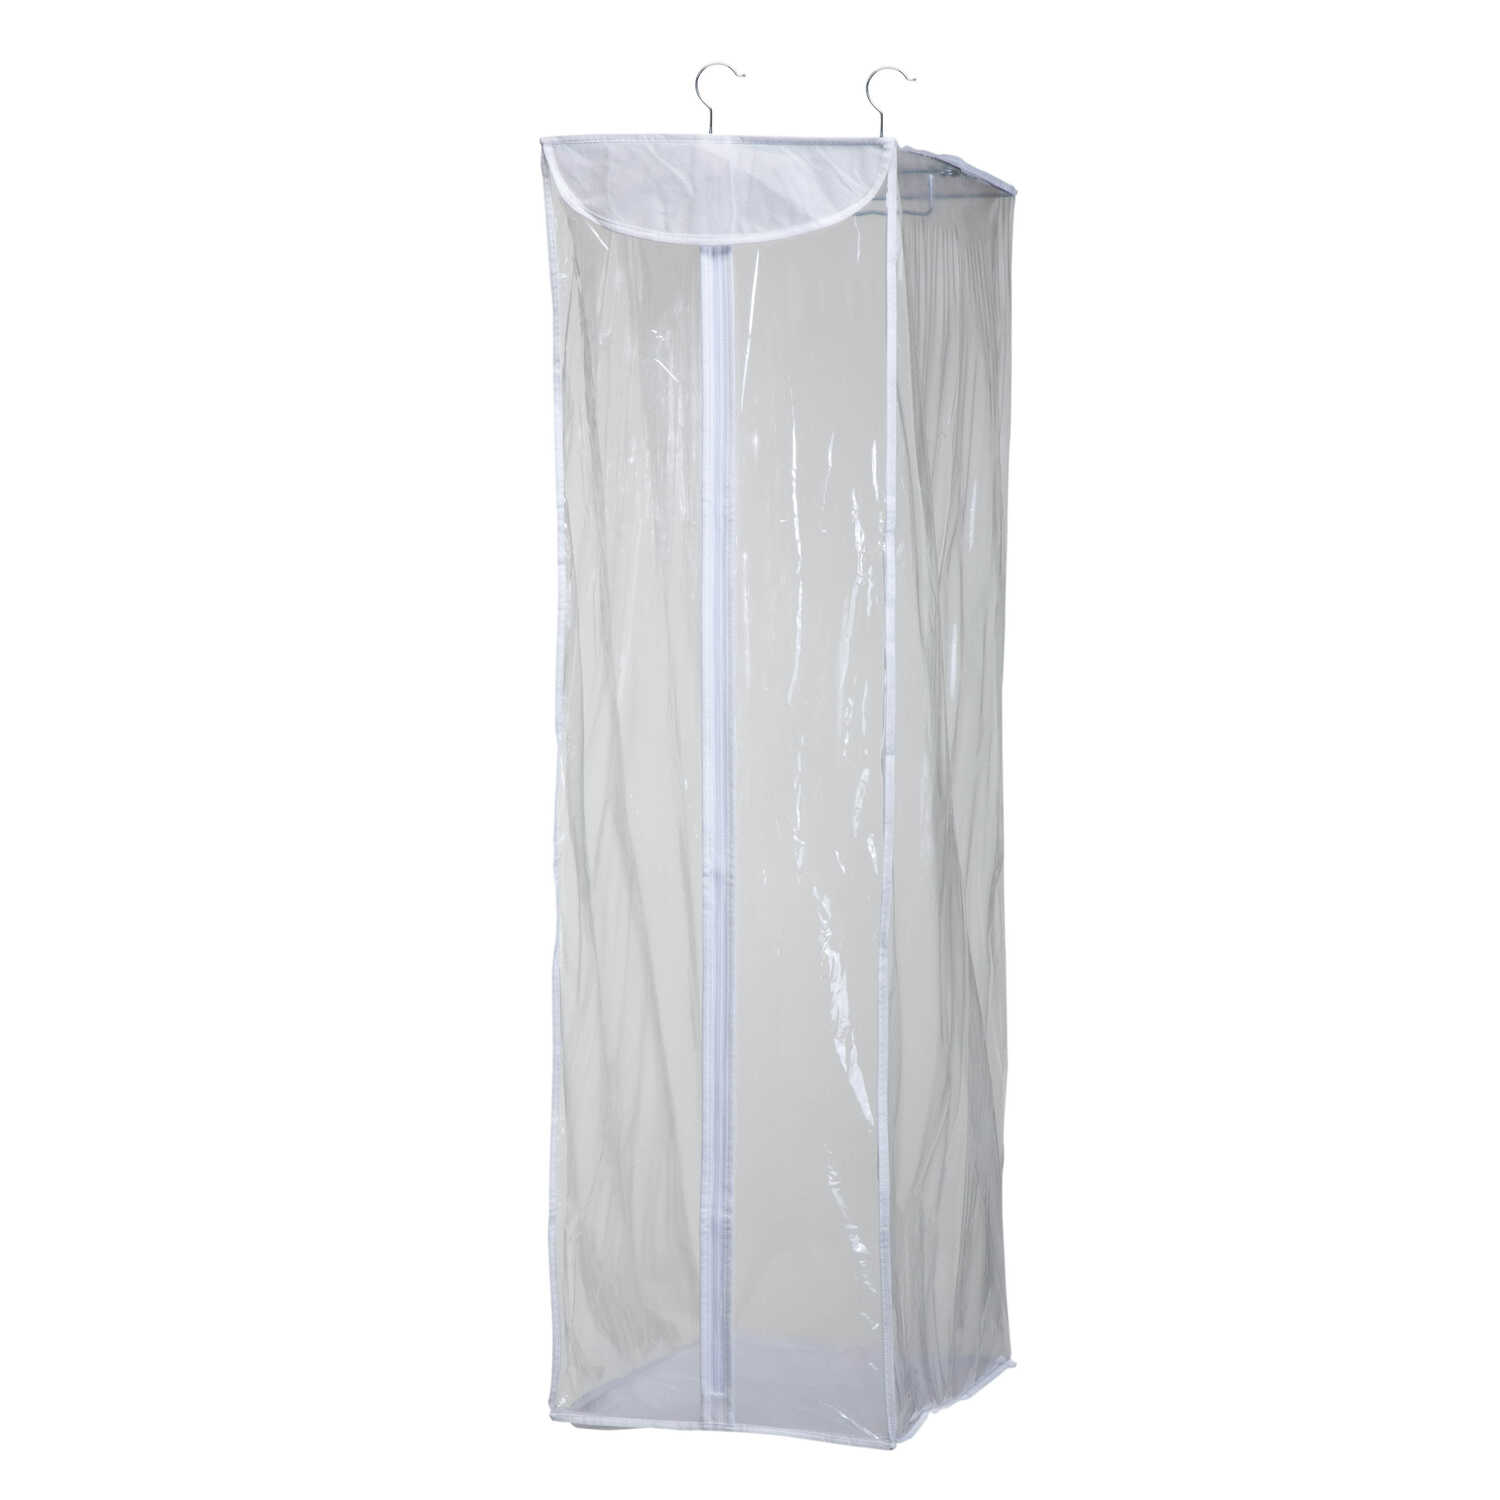 Honey Can Do  42 in. H x 12 in. L x 20 in. W Hanging Storage Closet  1 pk PEVA